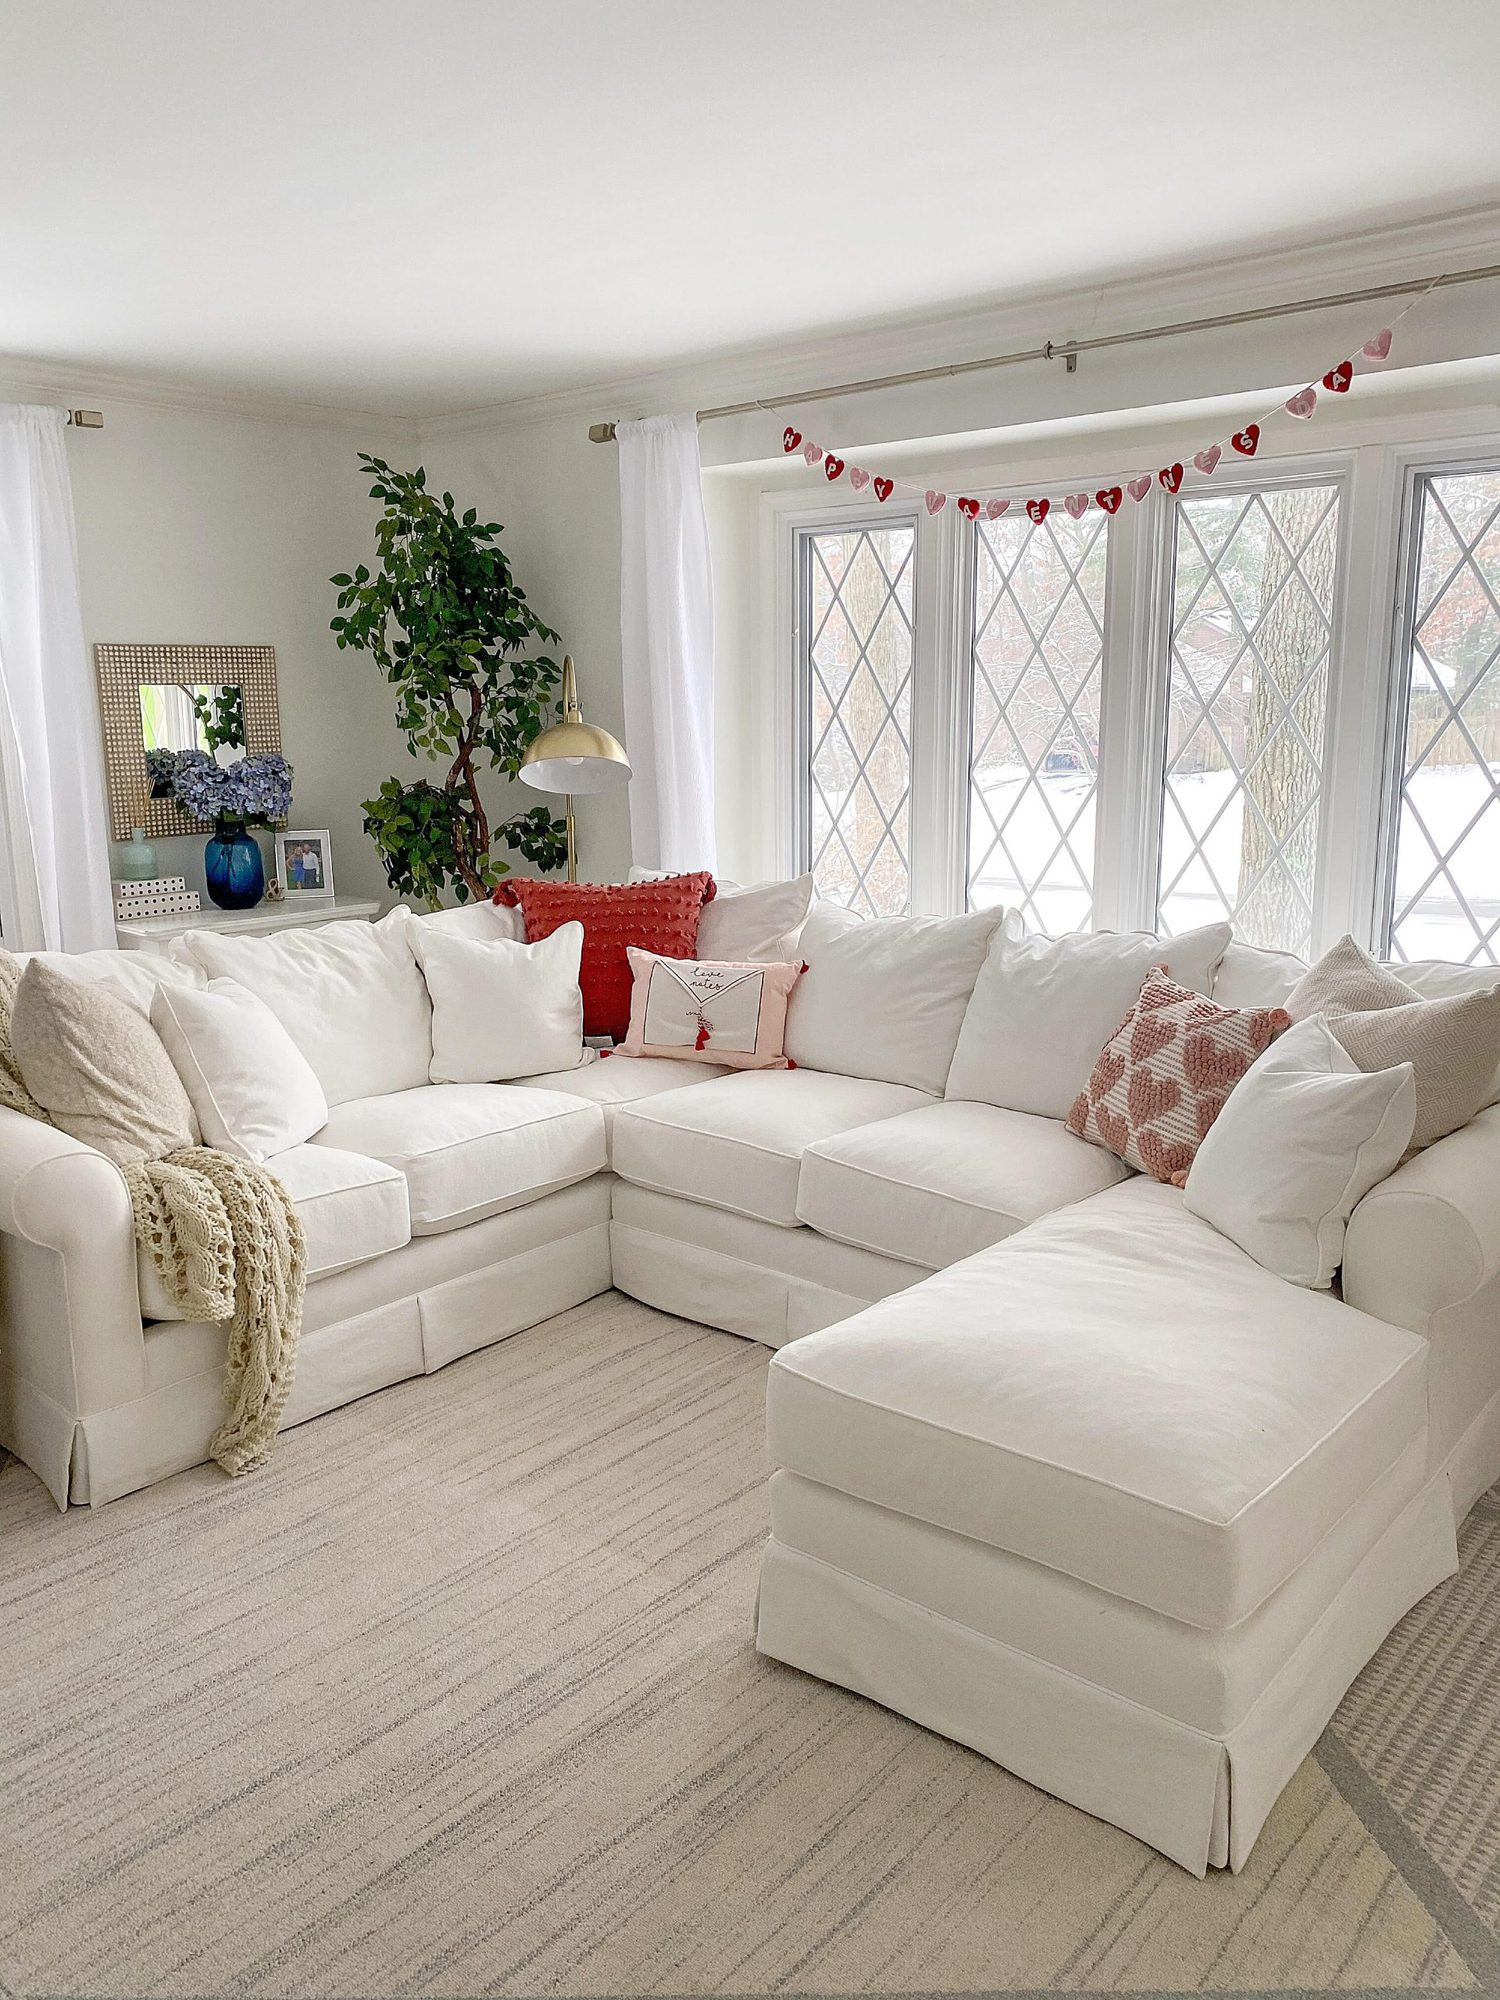 preppy living room decorated with valentine's day decor